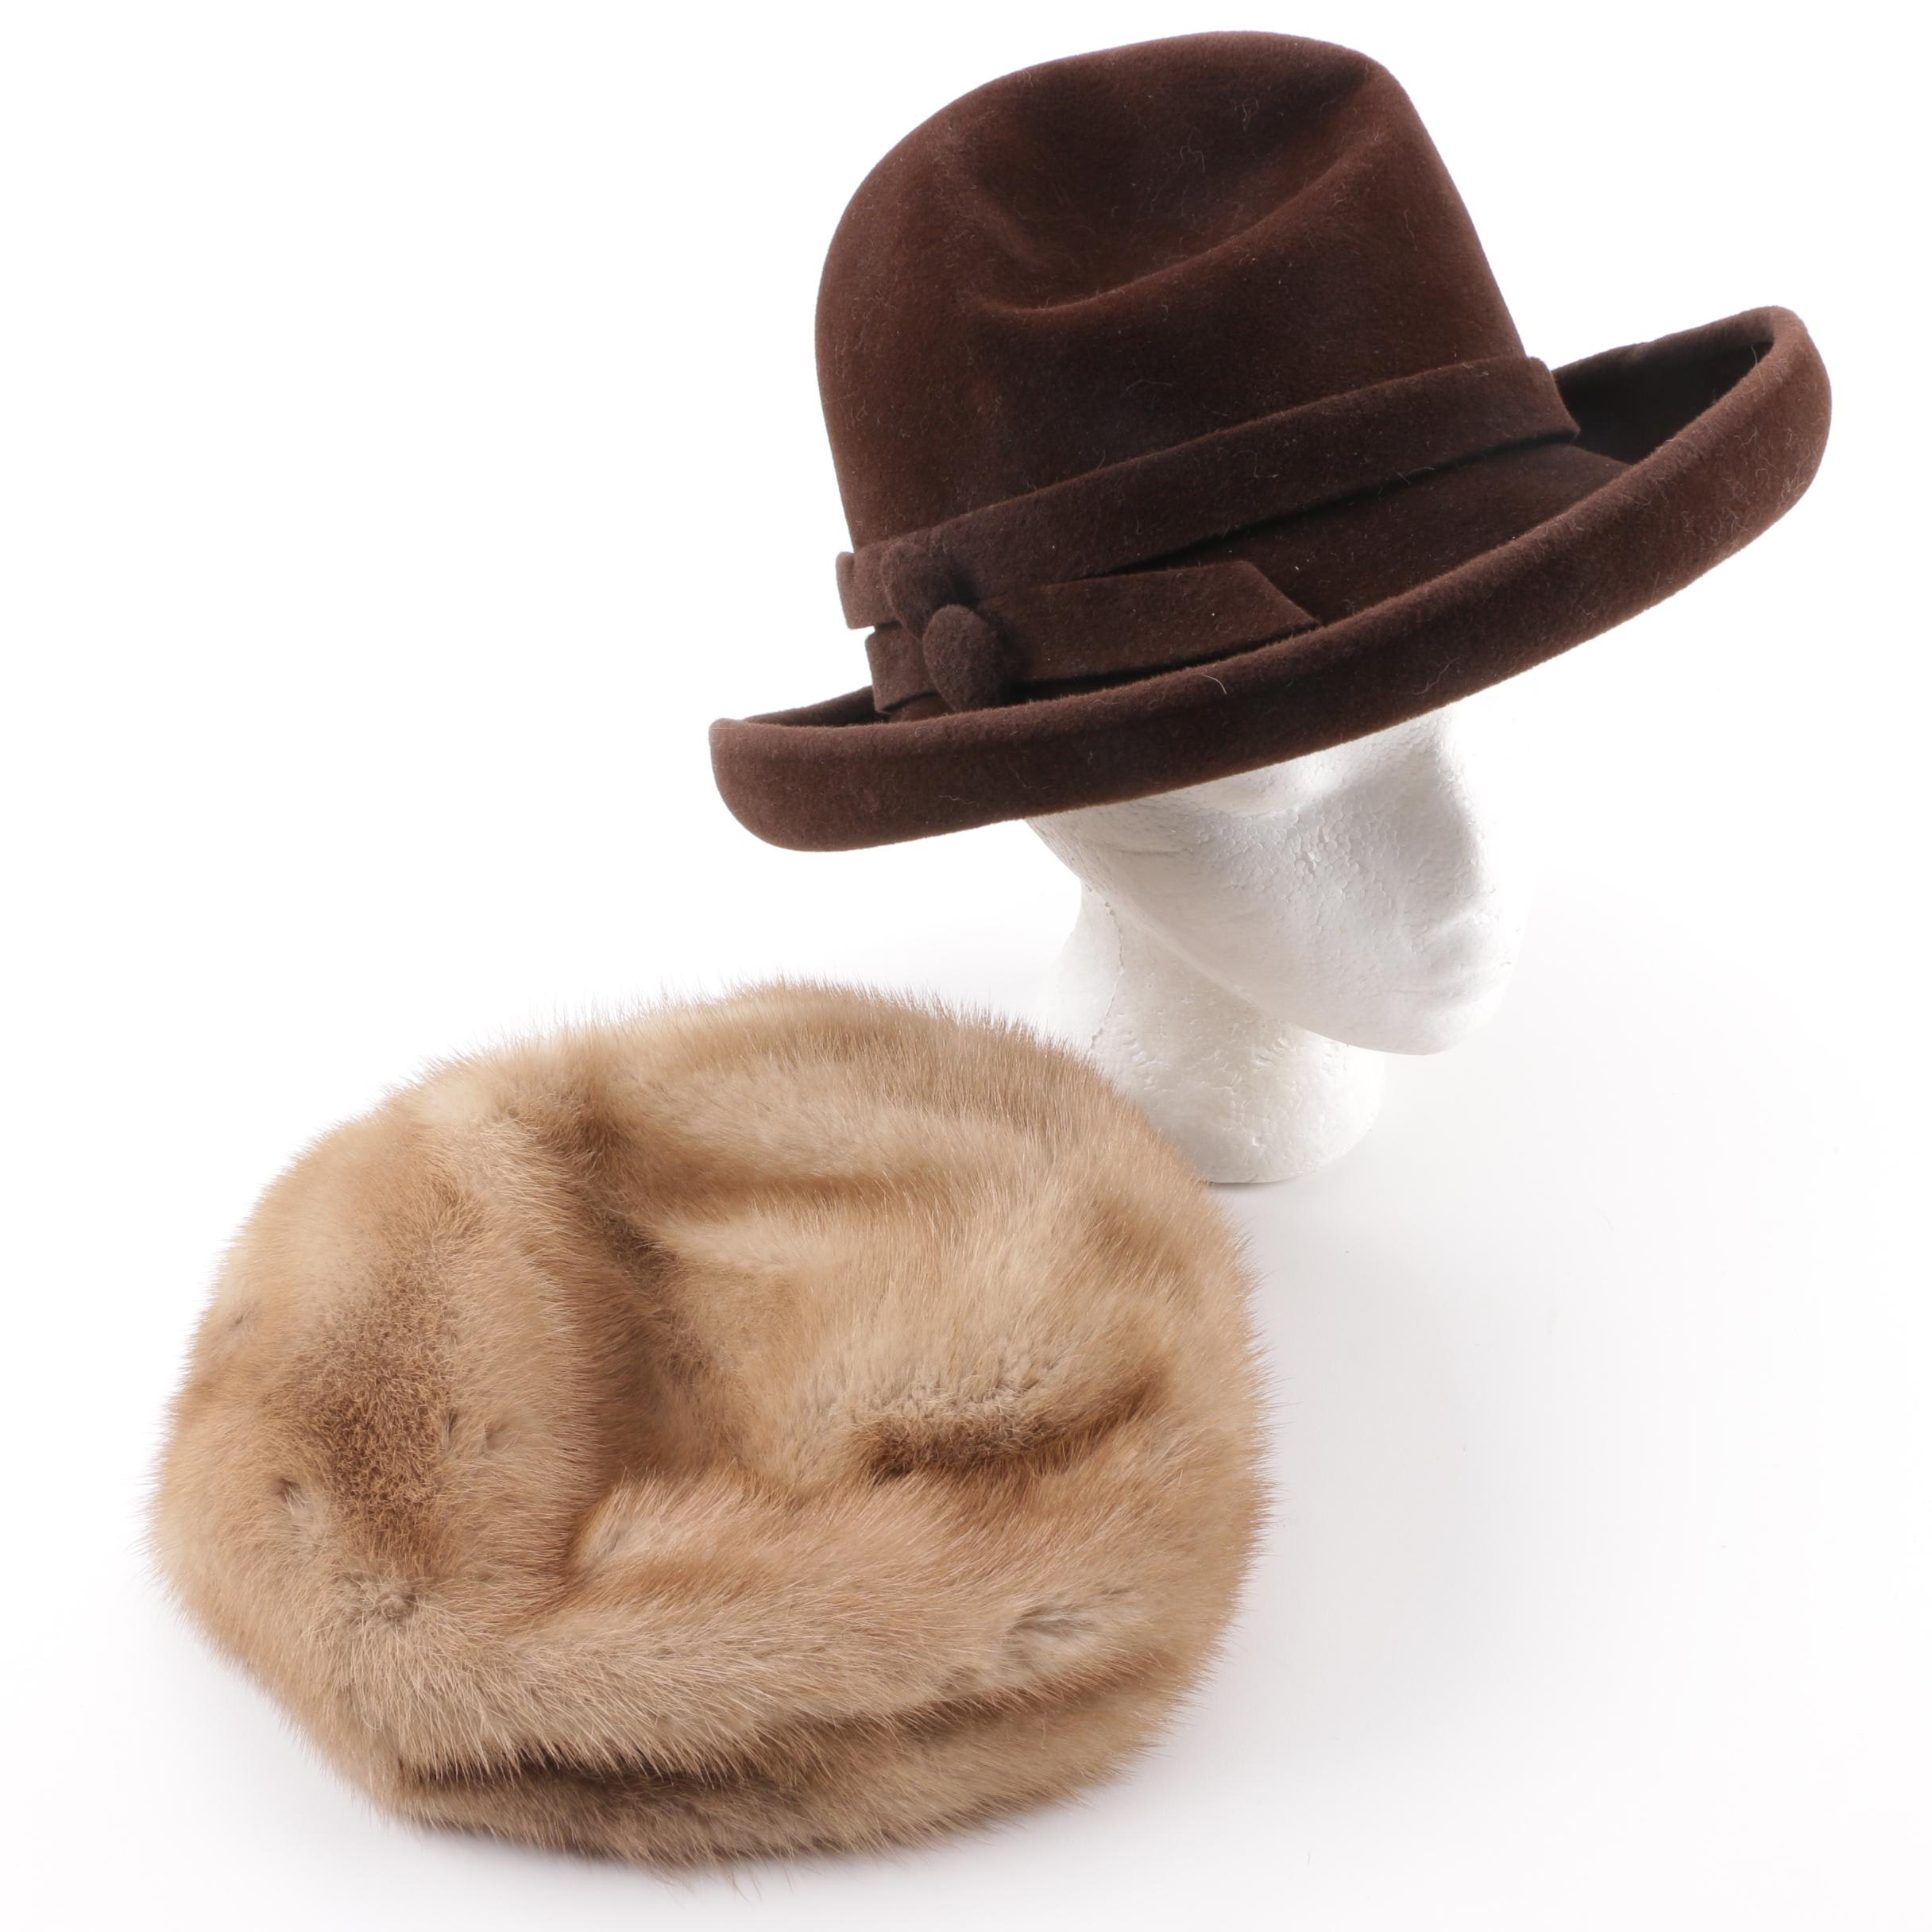 Italian Brown Fur Felt Breton Hat and Lenore Marshall New York Mink Fur Beret